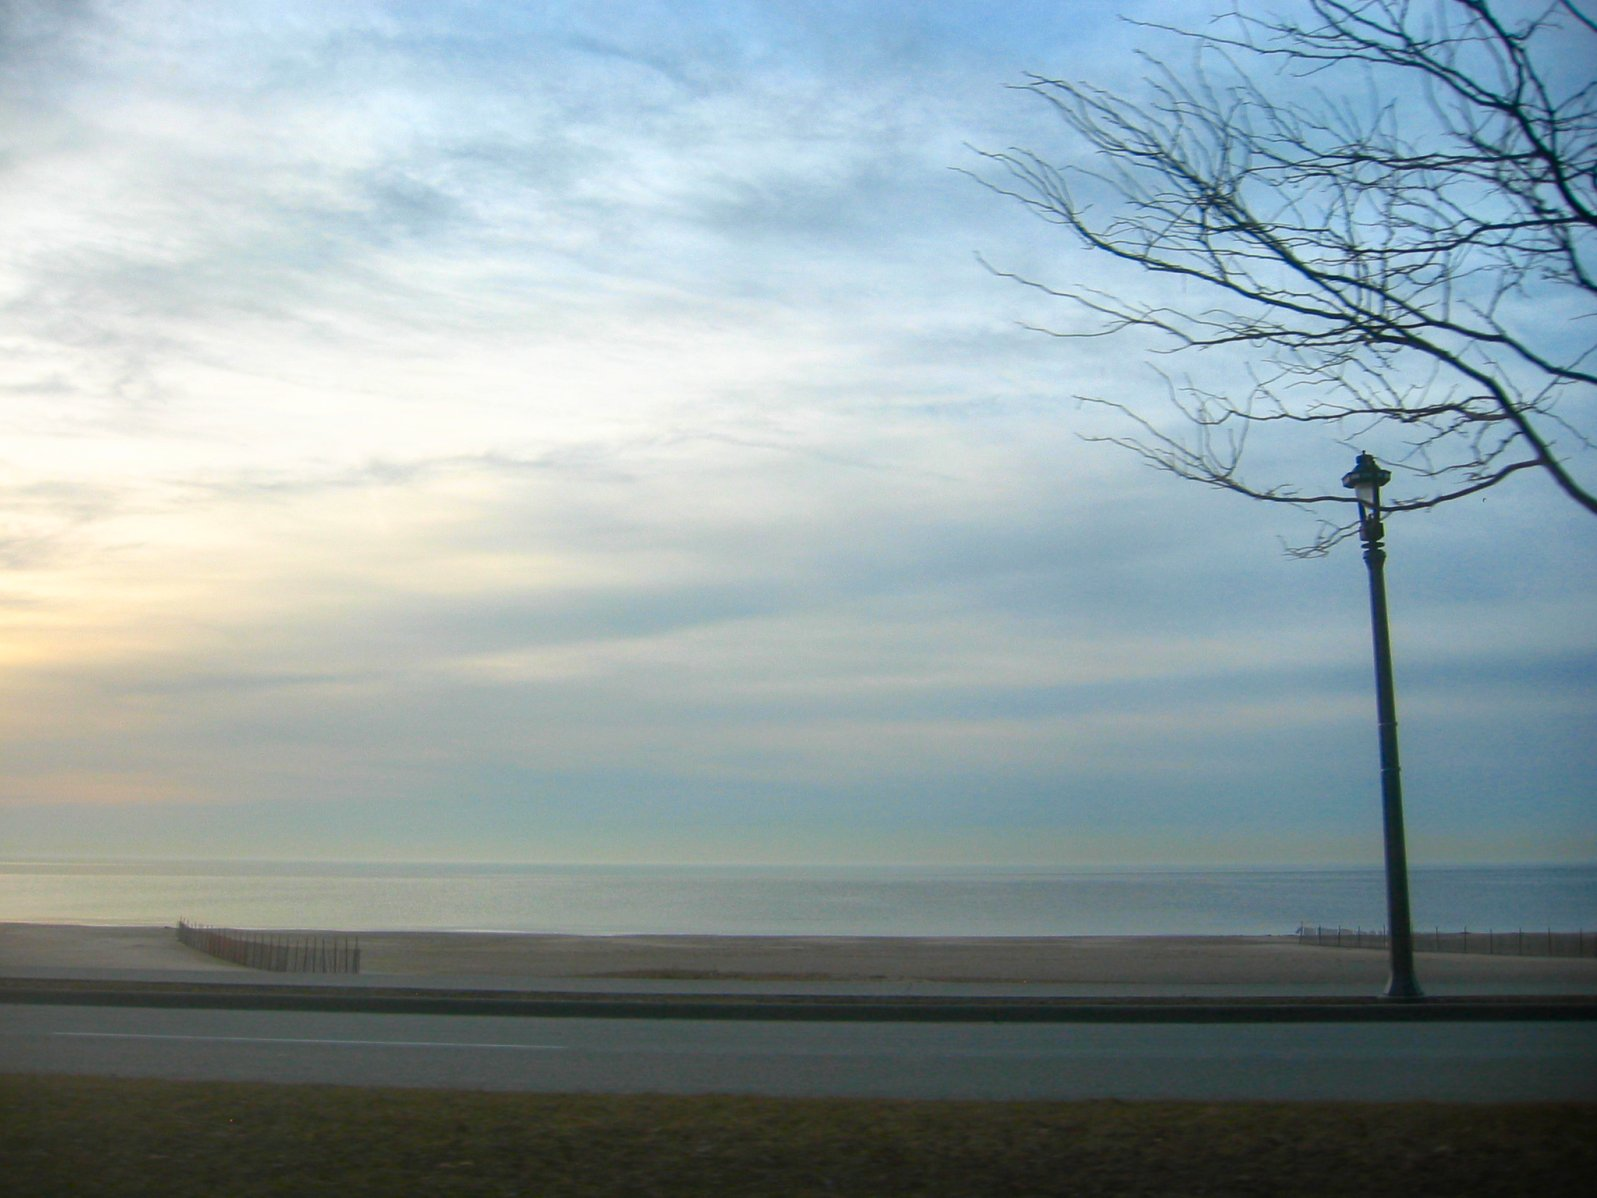 Lincoln Memorial Drive and Bradford Beach in Morning - March 2009 - soul-amp.com